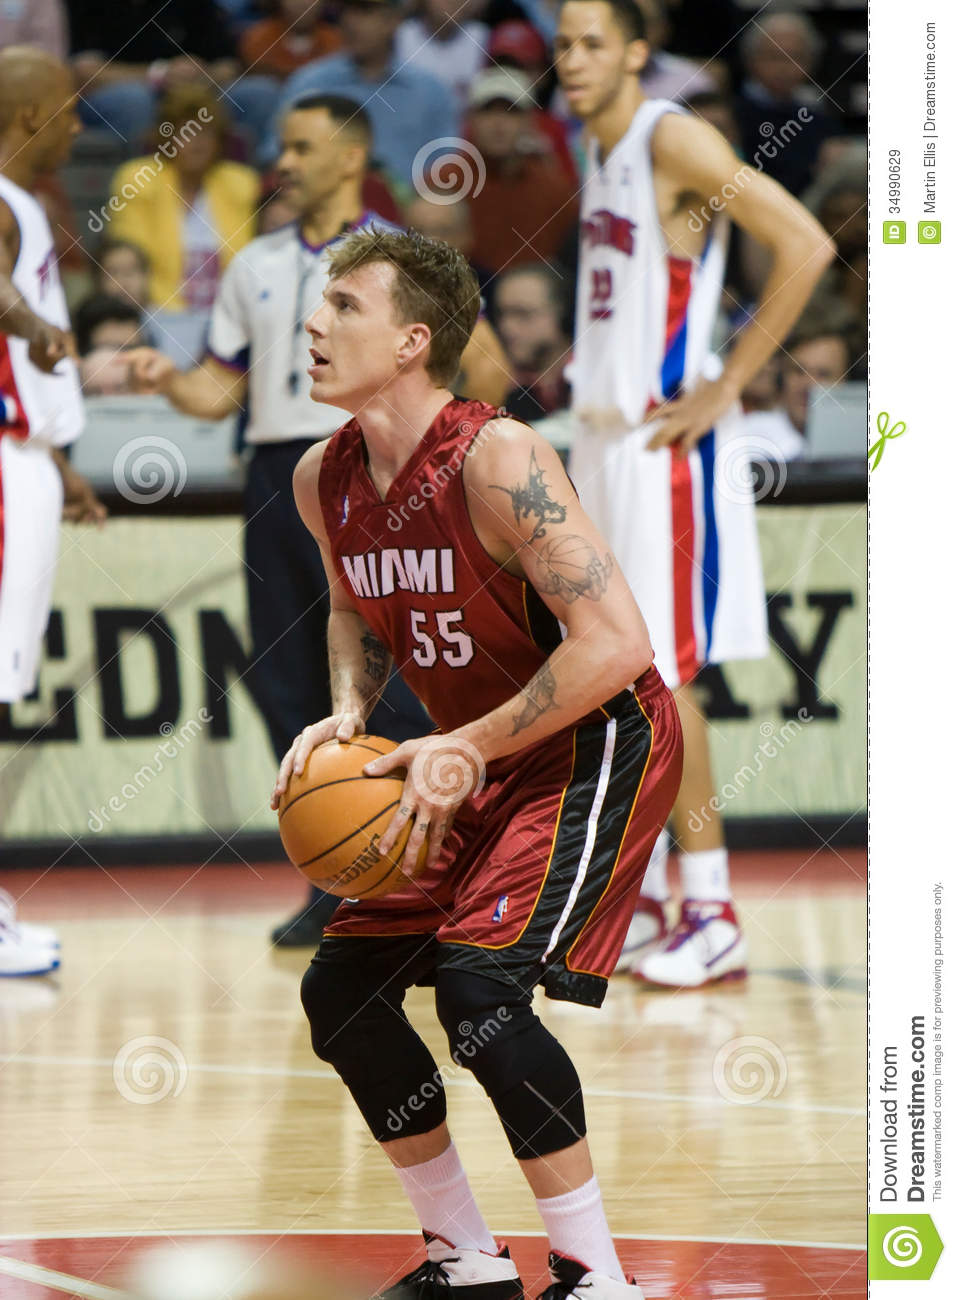 Jason Williams editorial stock image Image of mercial